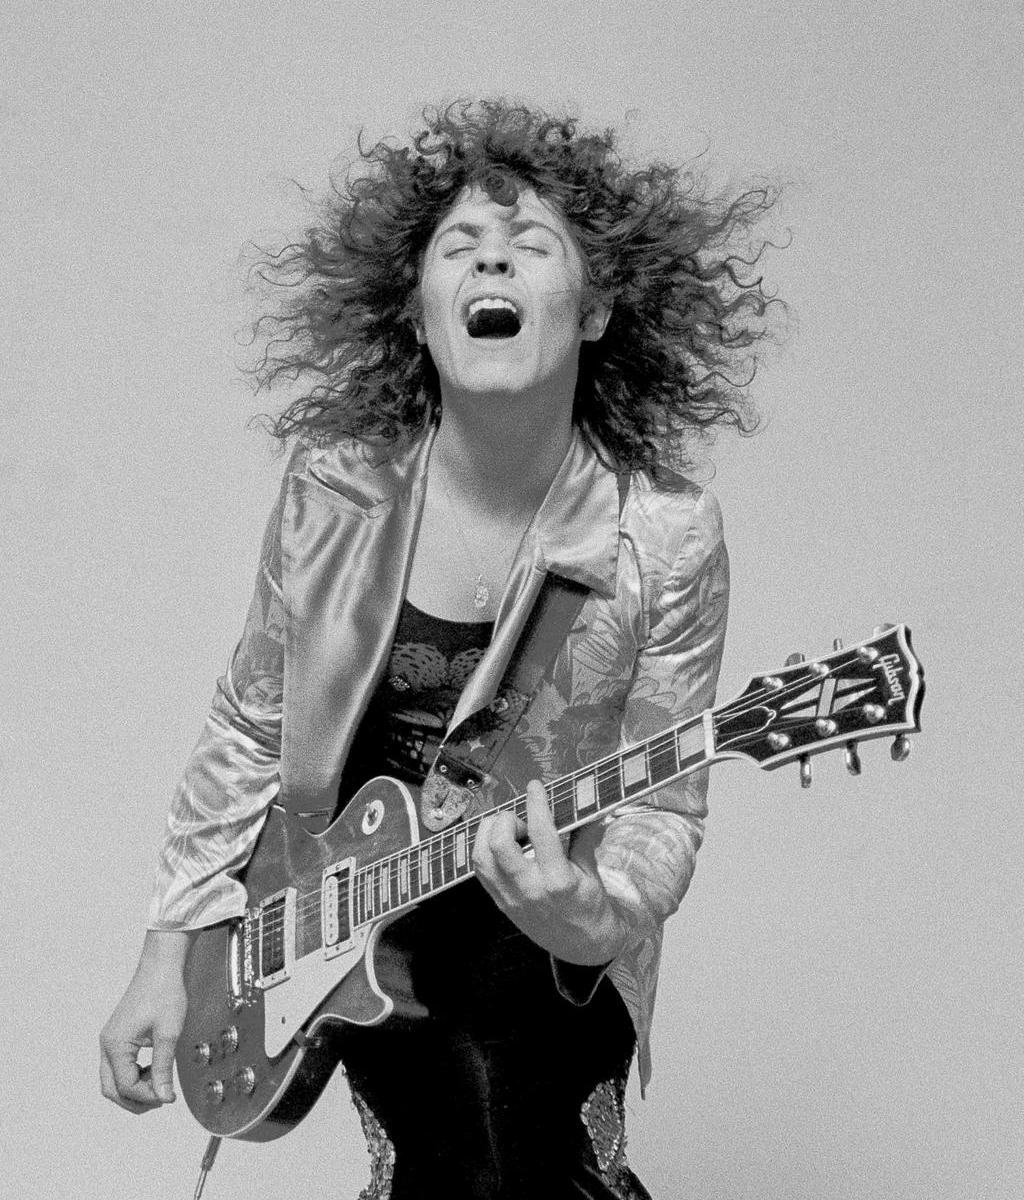 Marc Bolan T.Rex, Top 5, Top 5 Music Obsessions of the Day